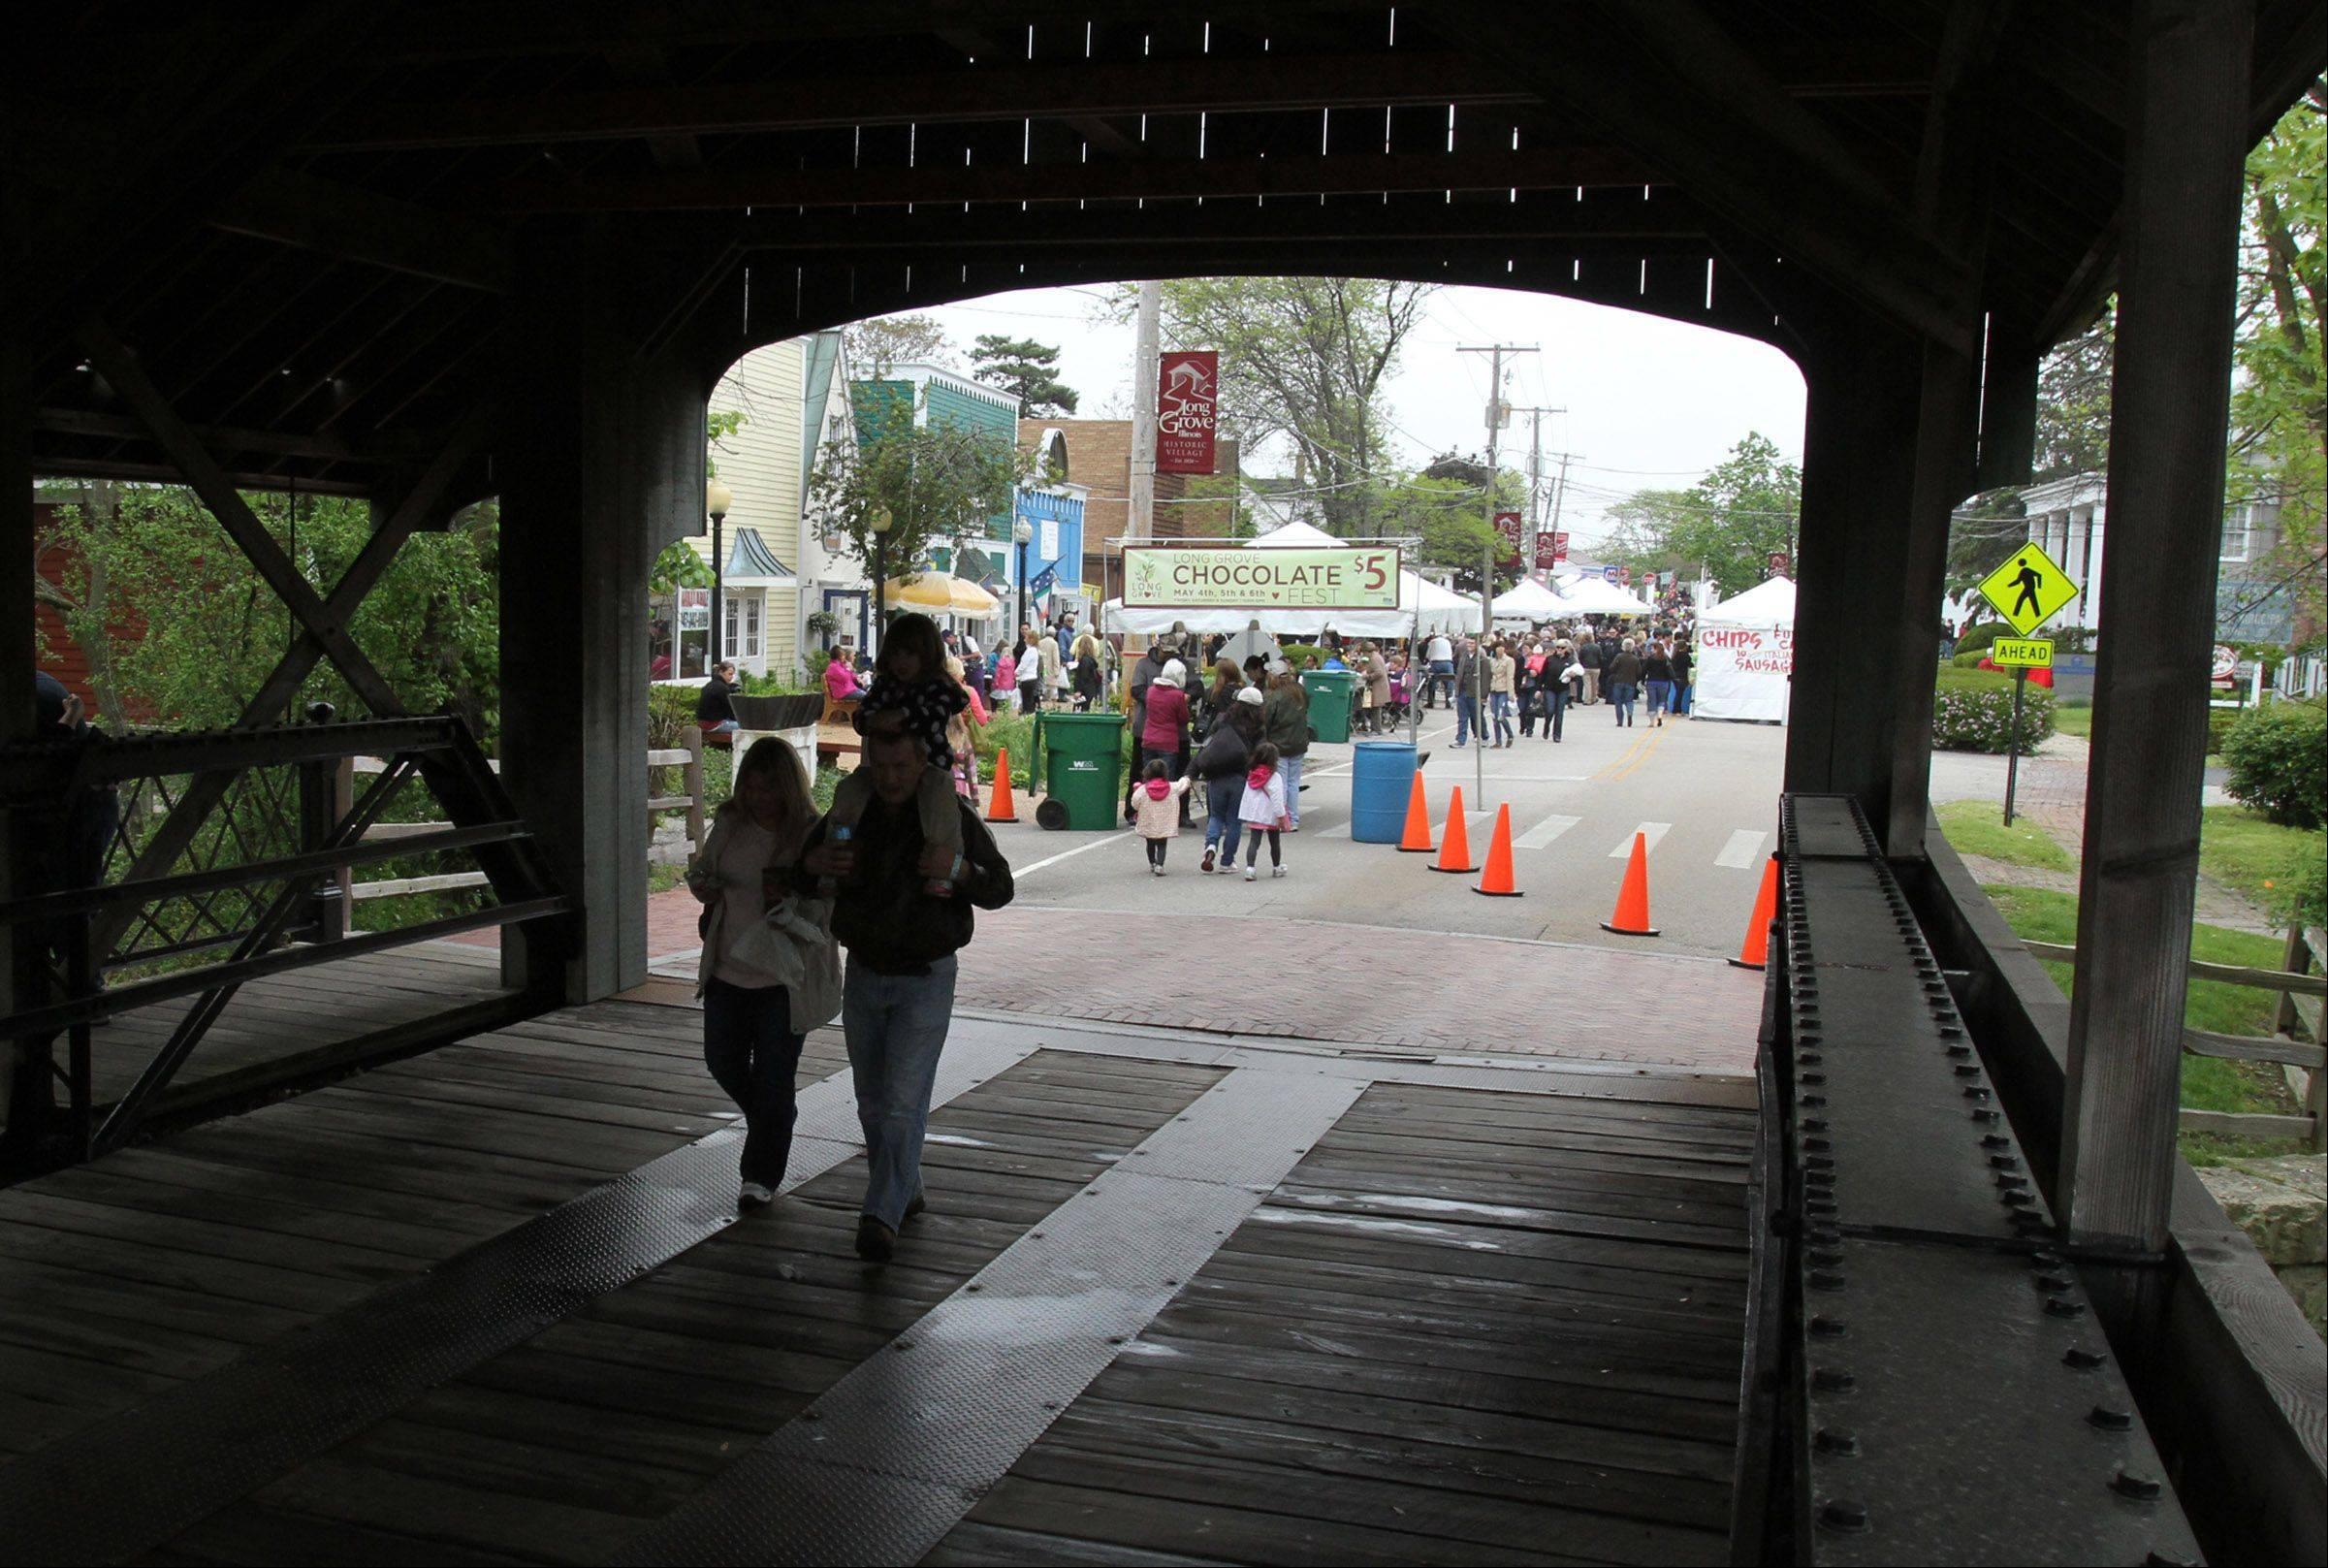 Fest goers enter the Long Grove Chocolate Fest through the covered bridge.